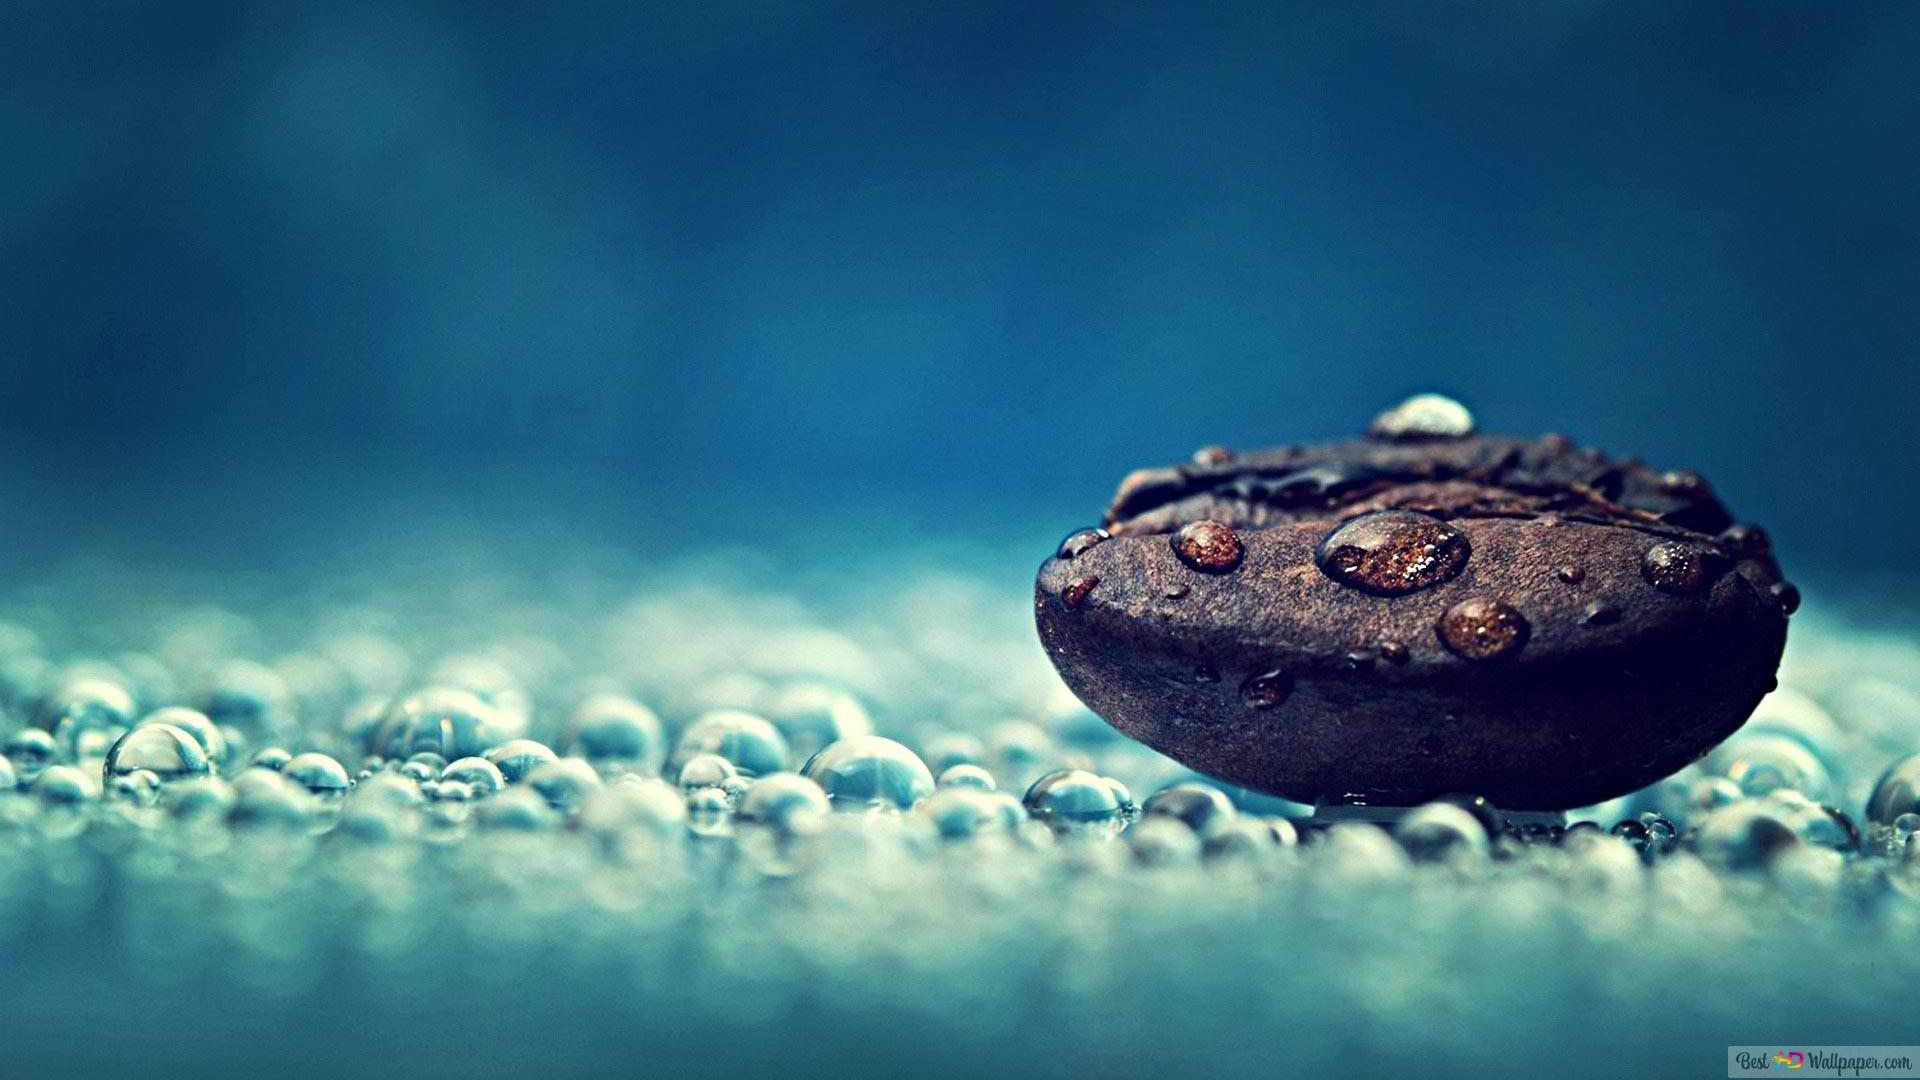 Stone And Water Drops Hd Wallpaper Download